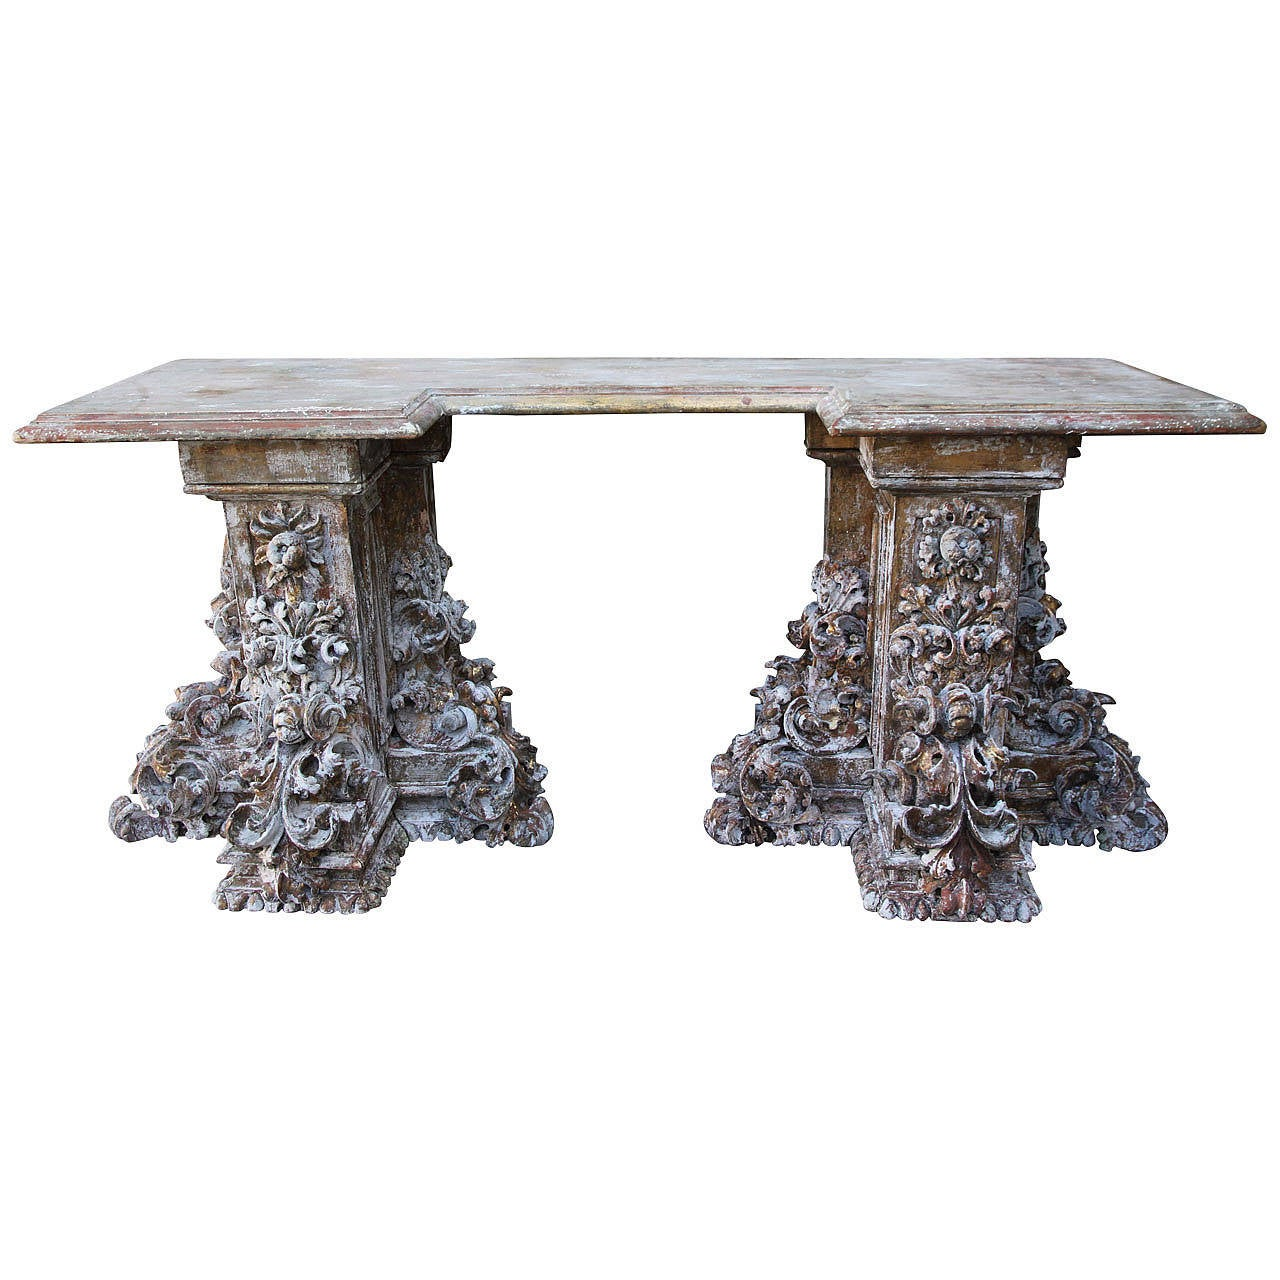 19th century italian baroque style console table at 1stdibs. Black Bedroom Furniture Sets. Home Design Ideas